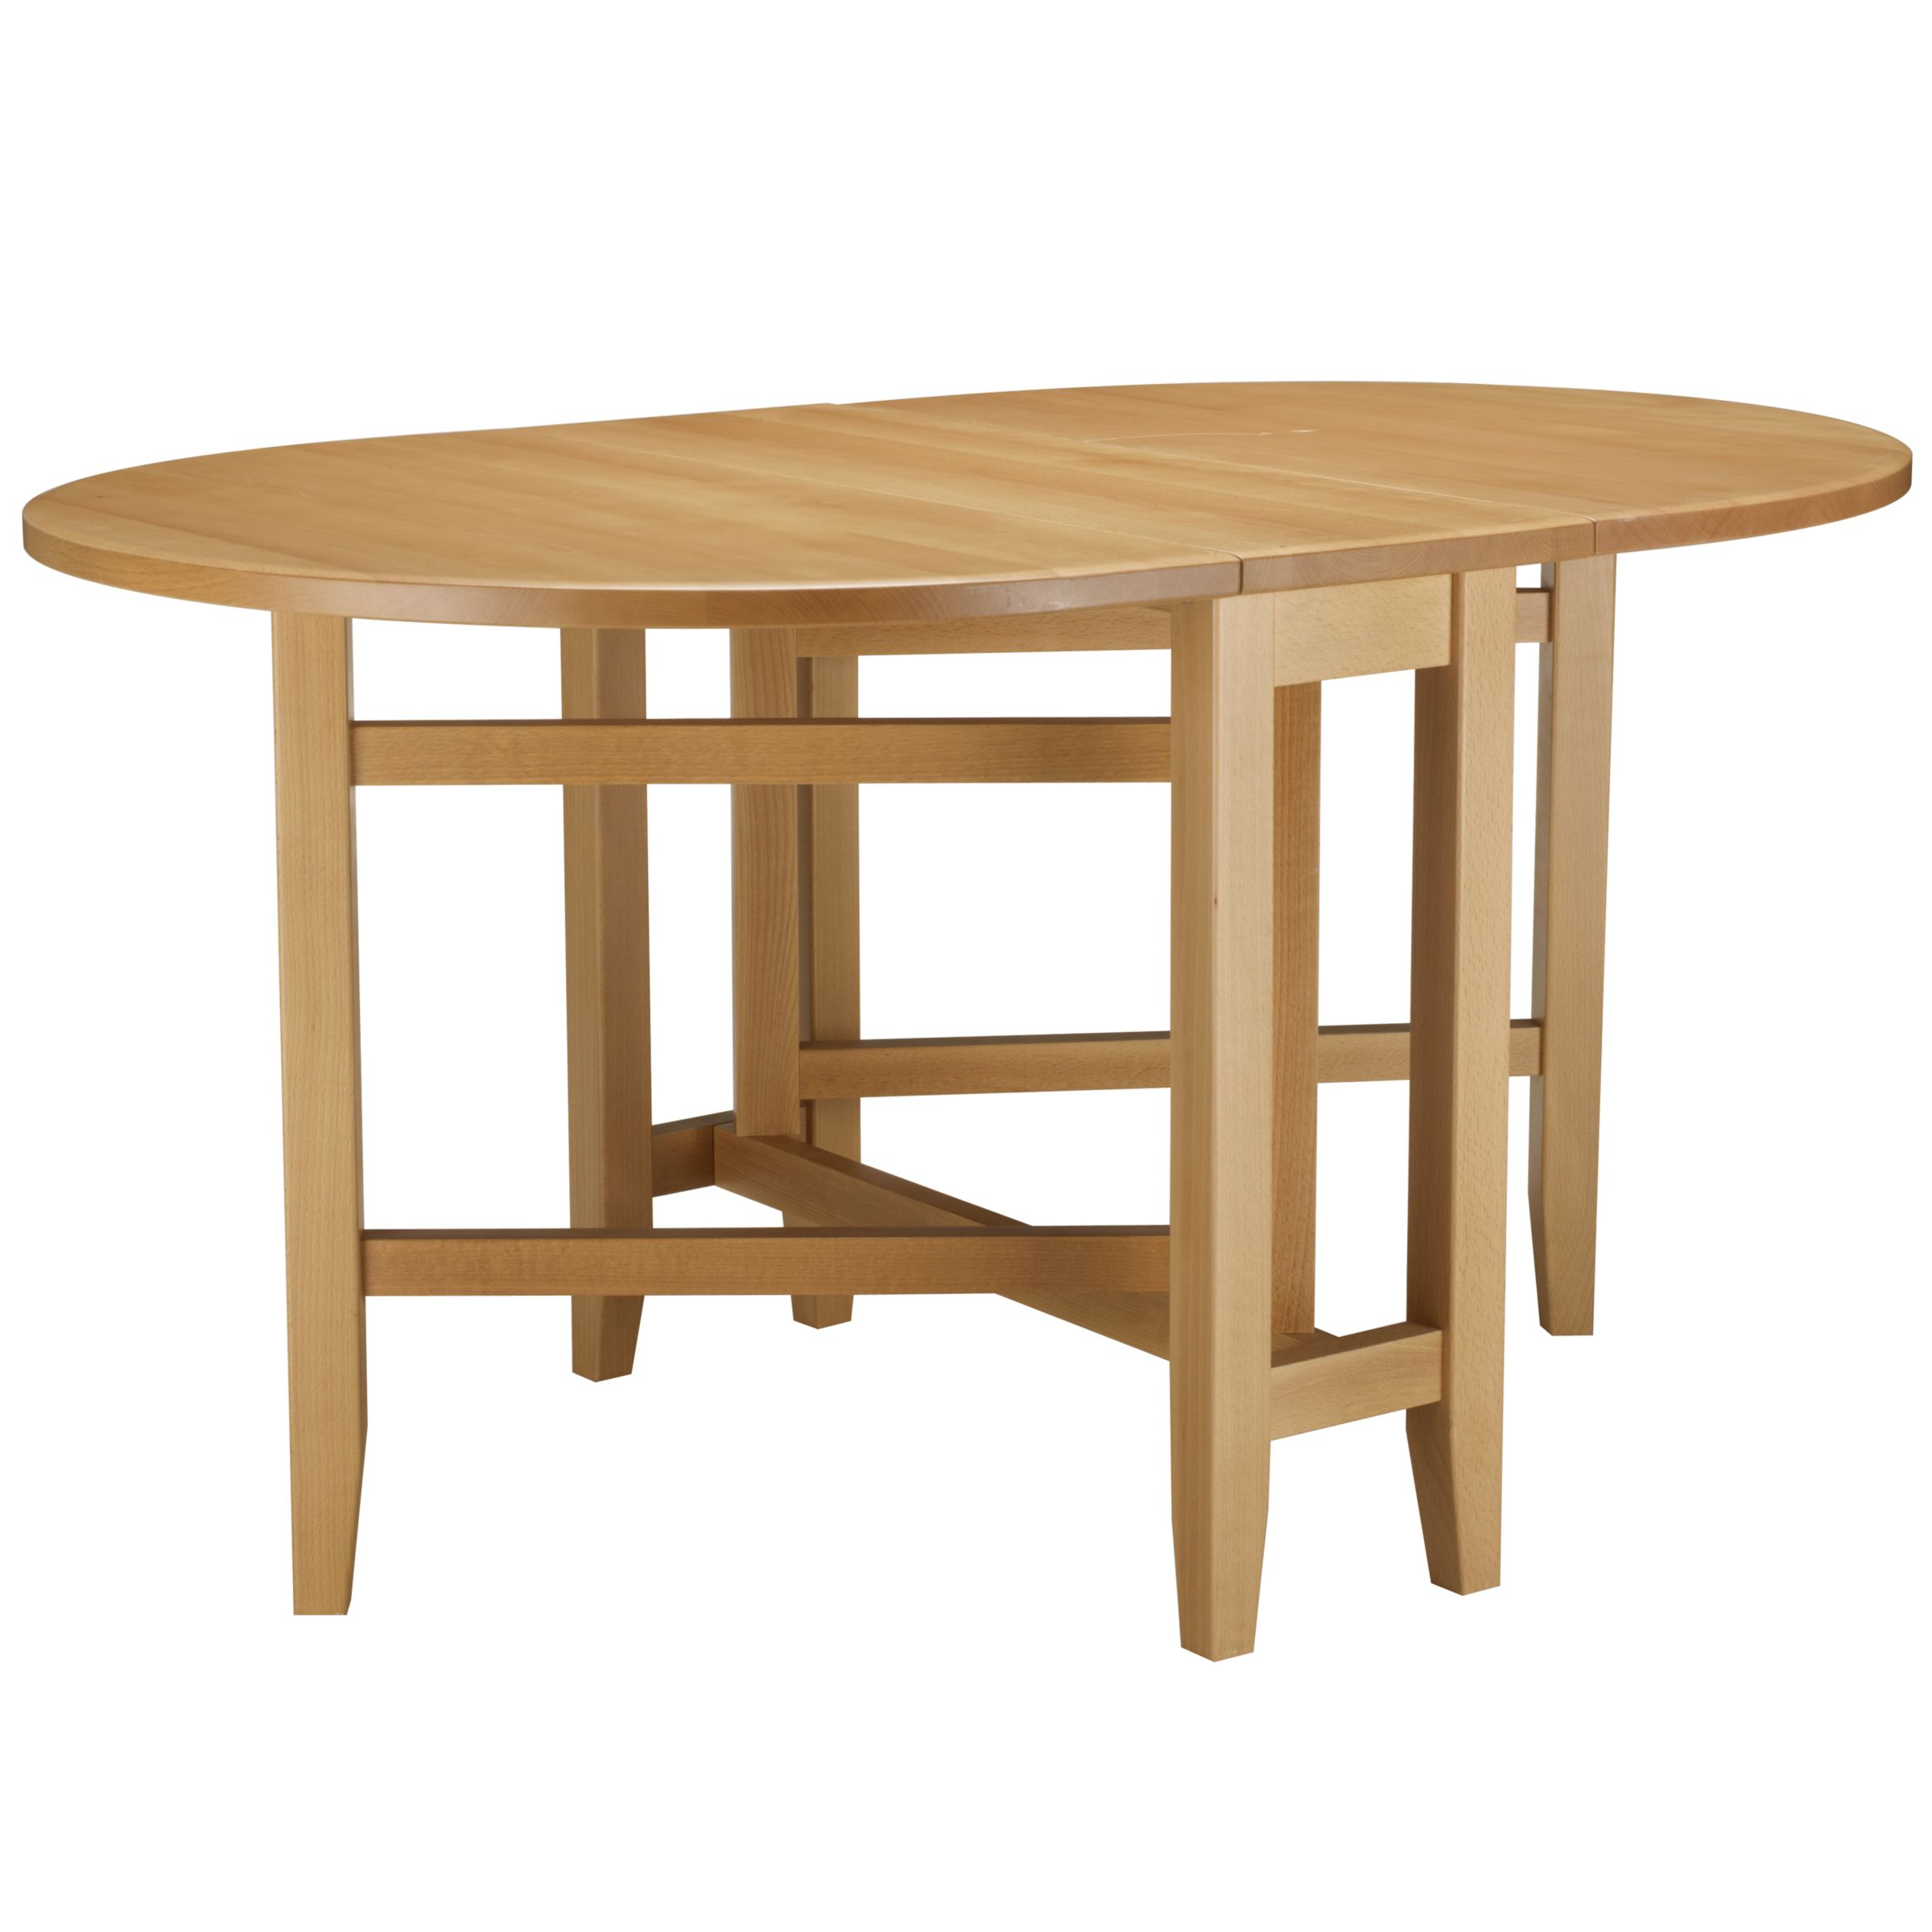 John Lewis Piran Gateleg Dining Table Oak review  : 231064114 from www.comparestoreprices.co.uk size 1600 x 1600 jpeg 144kB